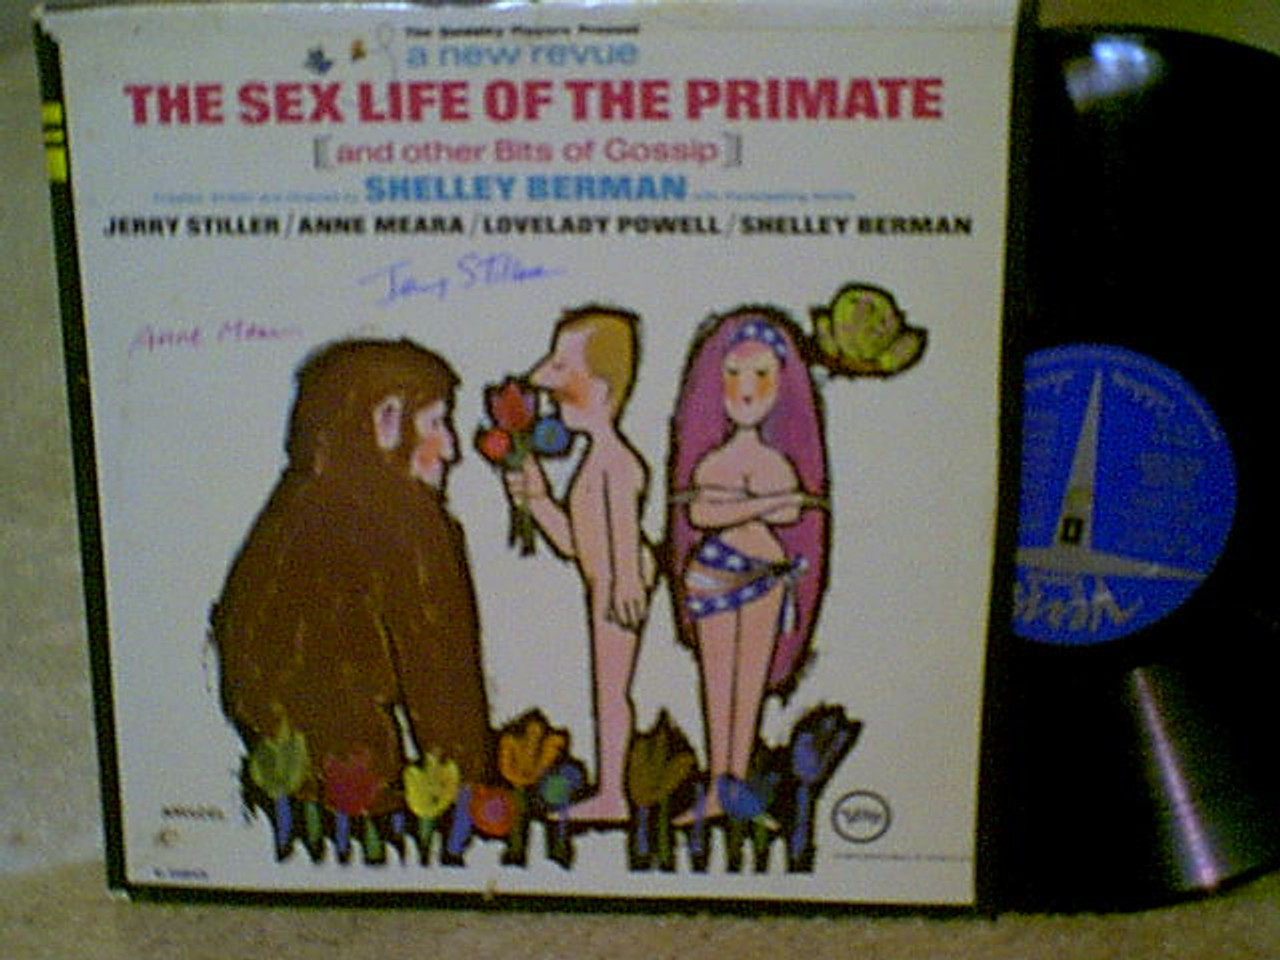 Stiller, Jerry Anne Meara LP Signed Autograph The Sex Life Of The Primate